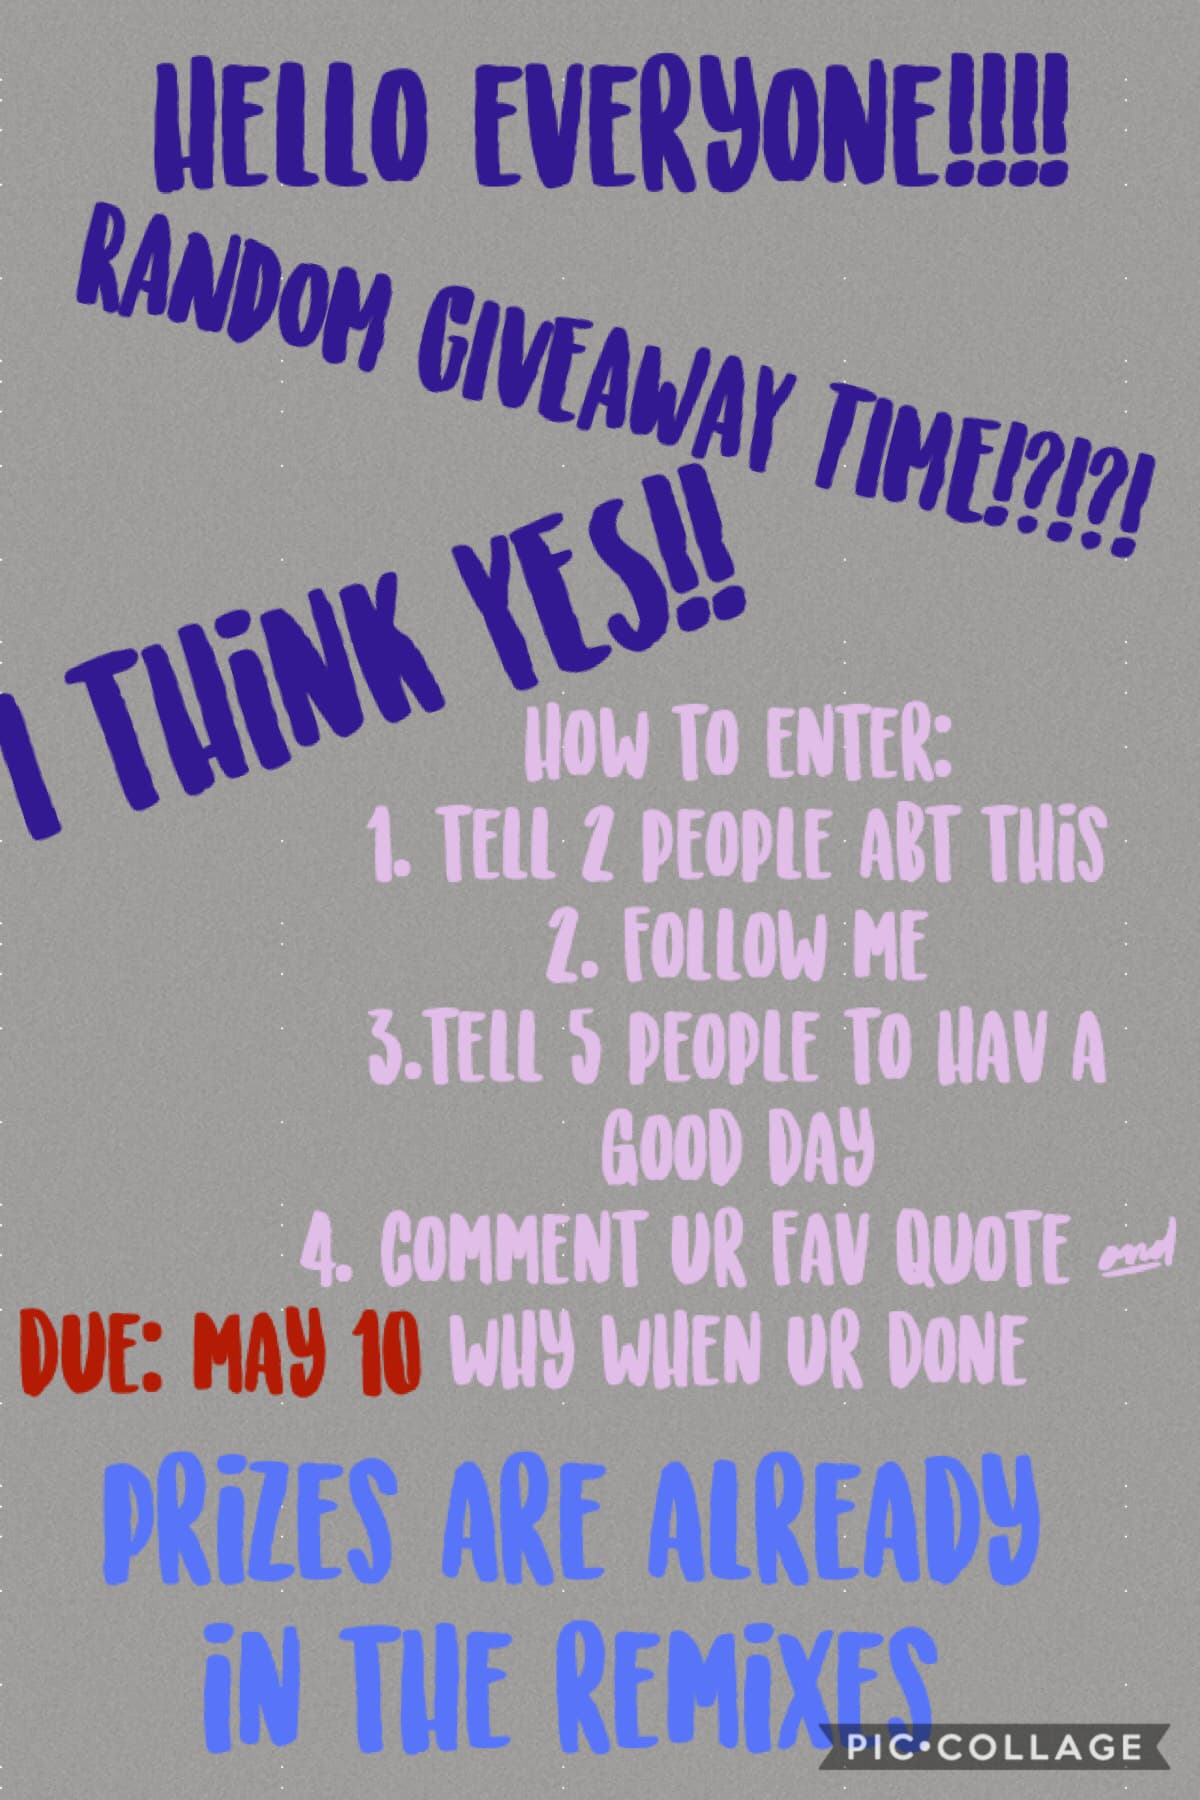 these random giveaways will happen 1 time every month during the summer ... so be ready for a summer of AWESOMENESS!!!